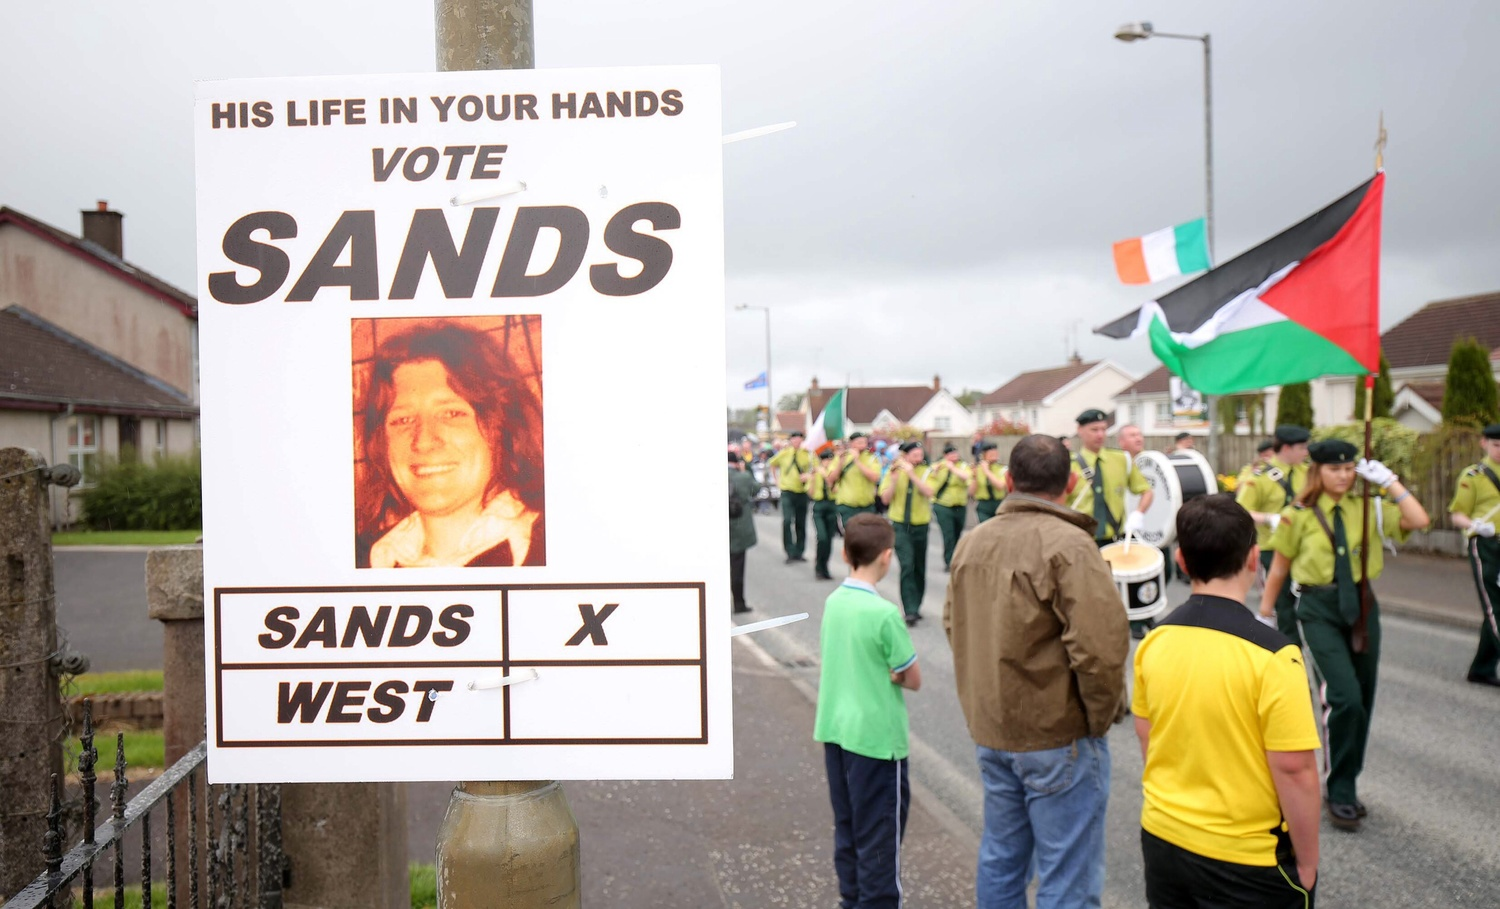 Bobby Sands election poster at August's Sinn Féin commemoration in Fermanagh.